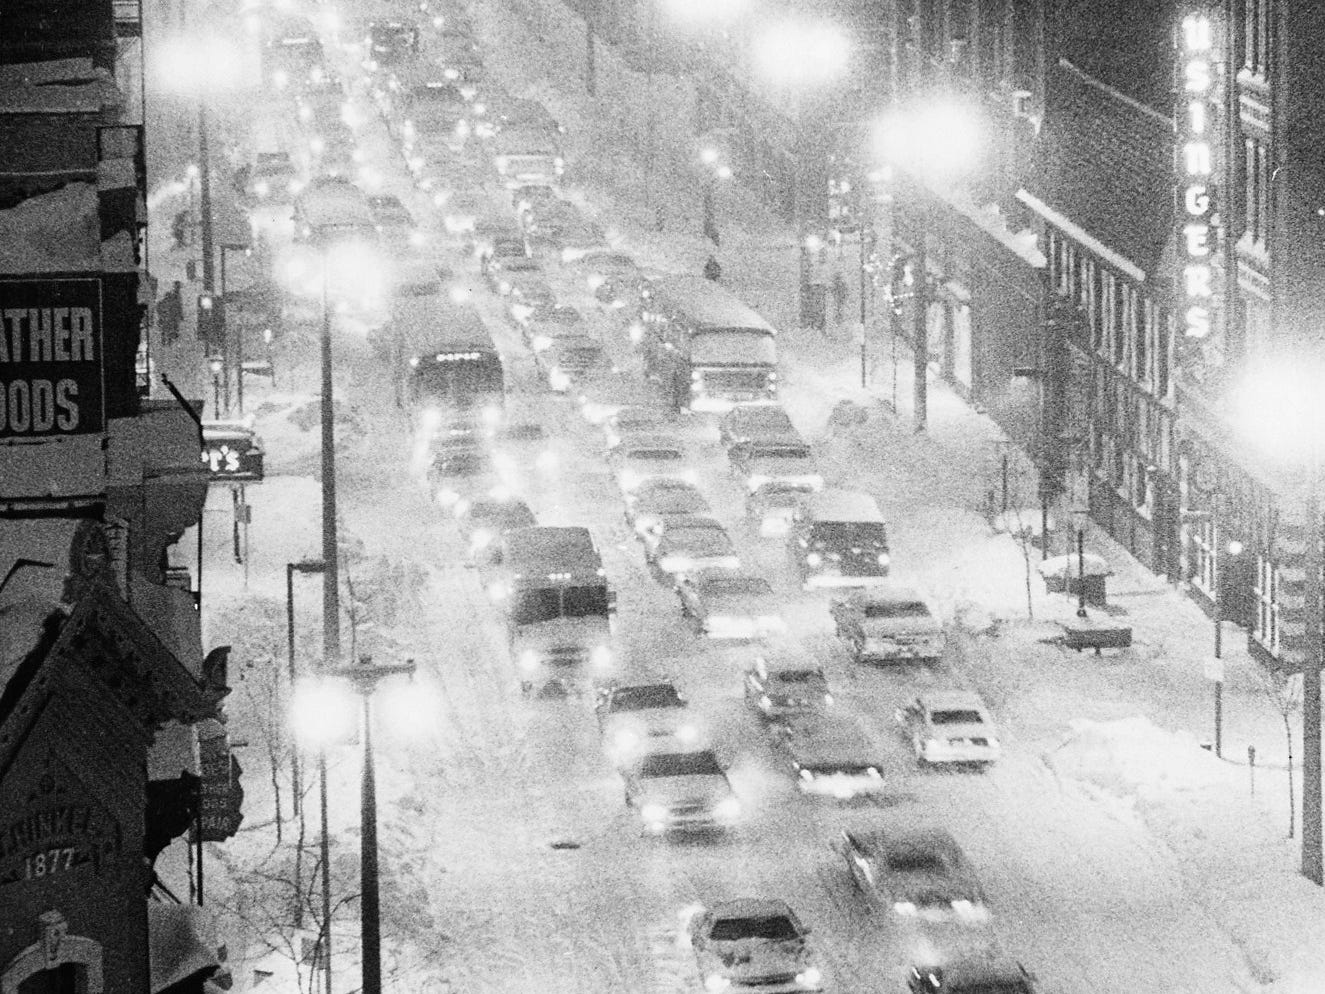 Cars struggle south on what was then North Third Street near State Street in downtown Milwaukee, through a blizzard during rush hour on Jan. 15, 1979. This photo was published in the Jan. 16, 1979, Milwaukee Sentinel.